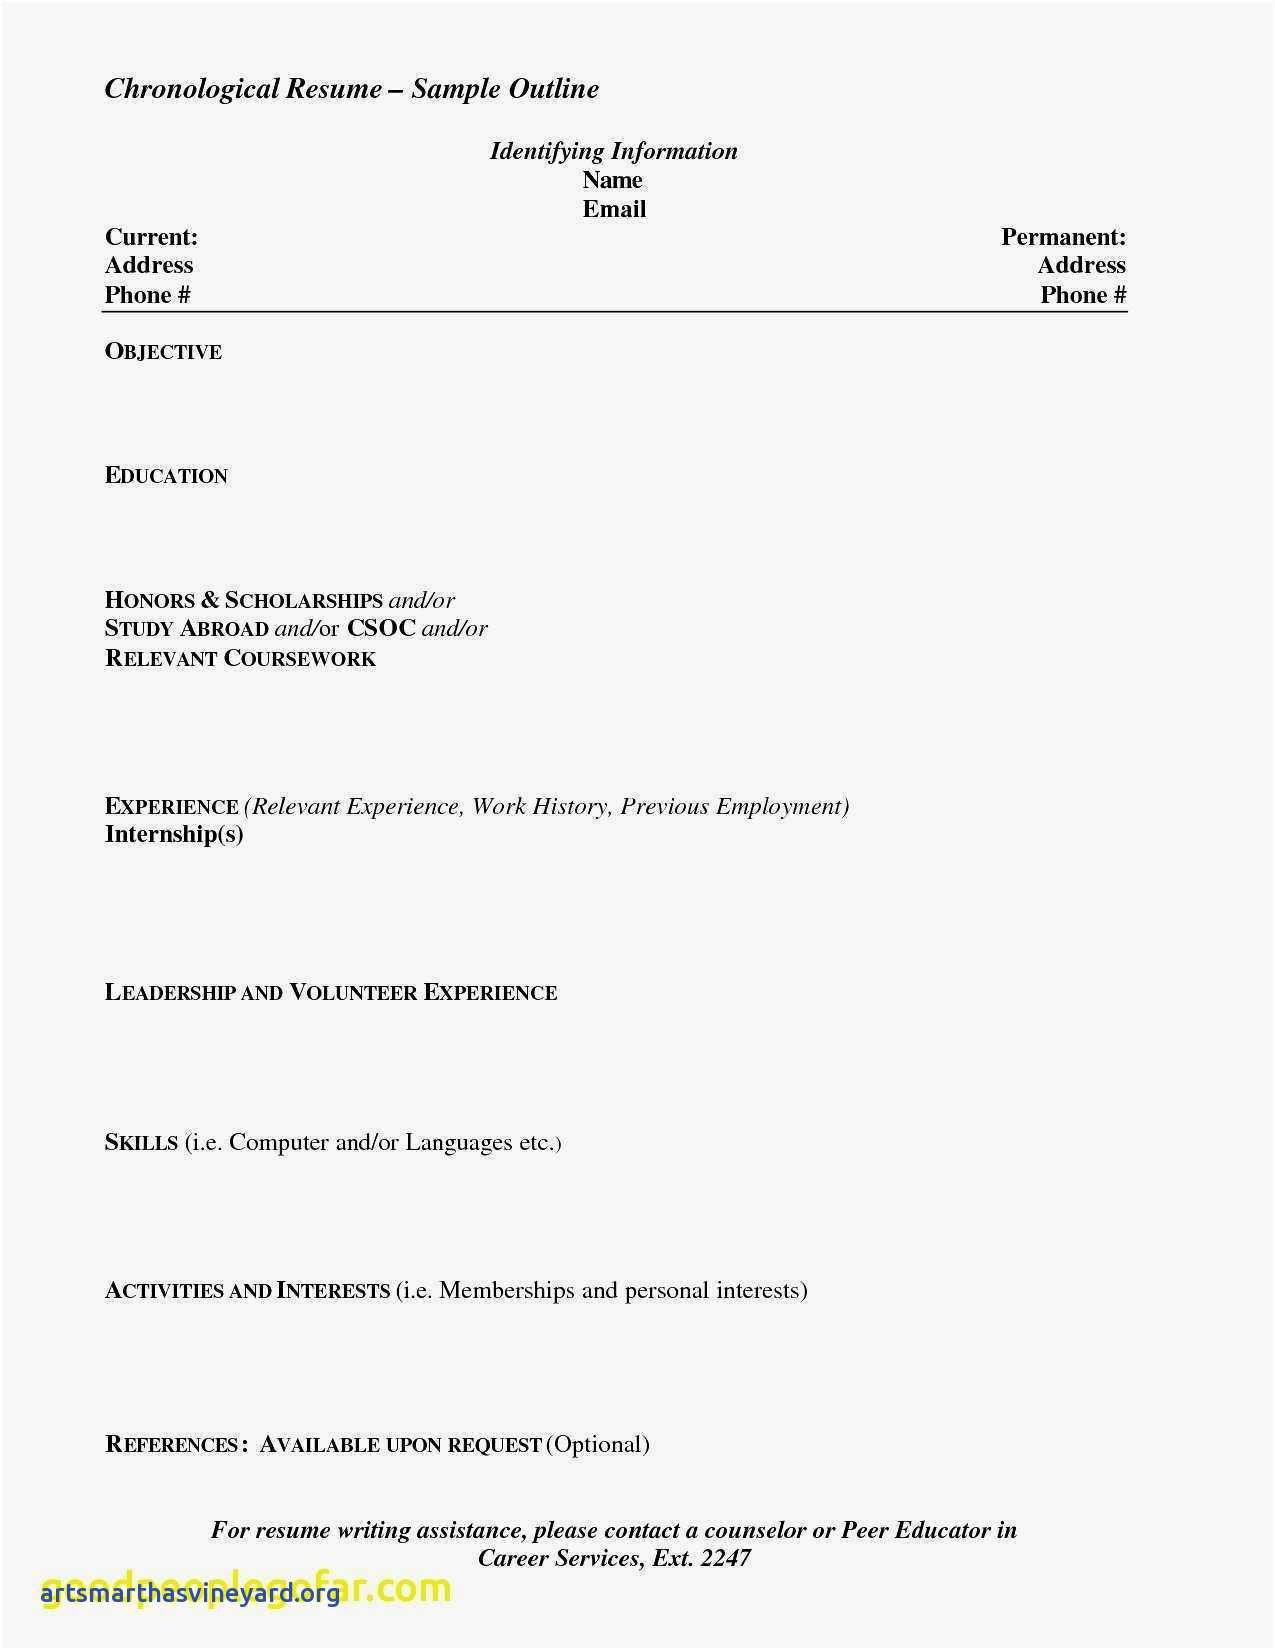 Examples Of High School Resumes - Resume for Highschool Students with No Experience Example Unique